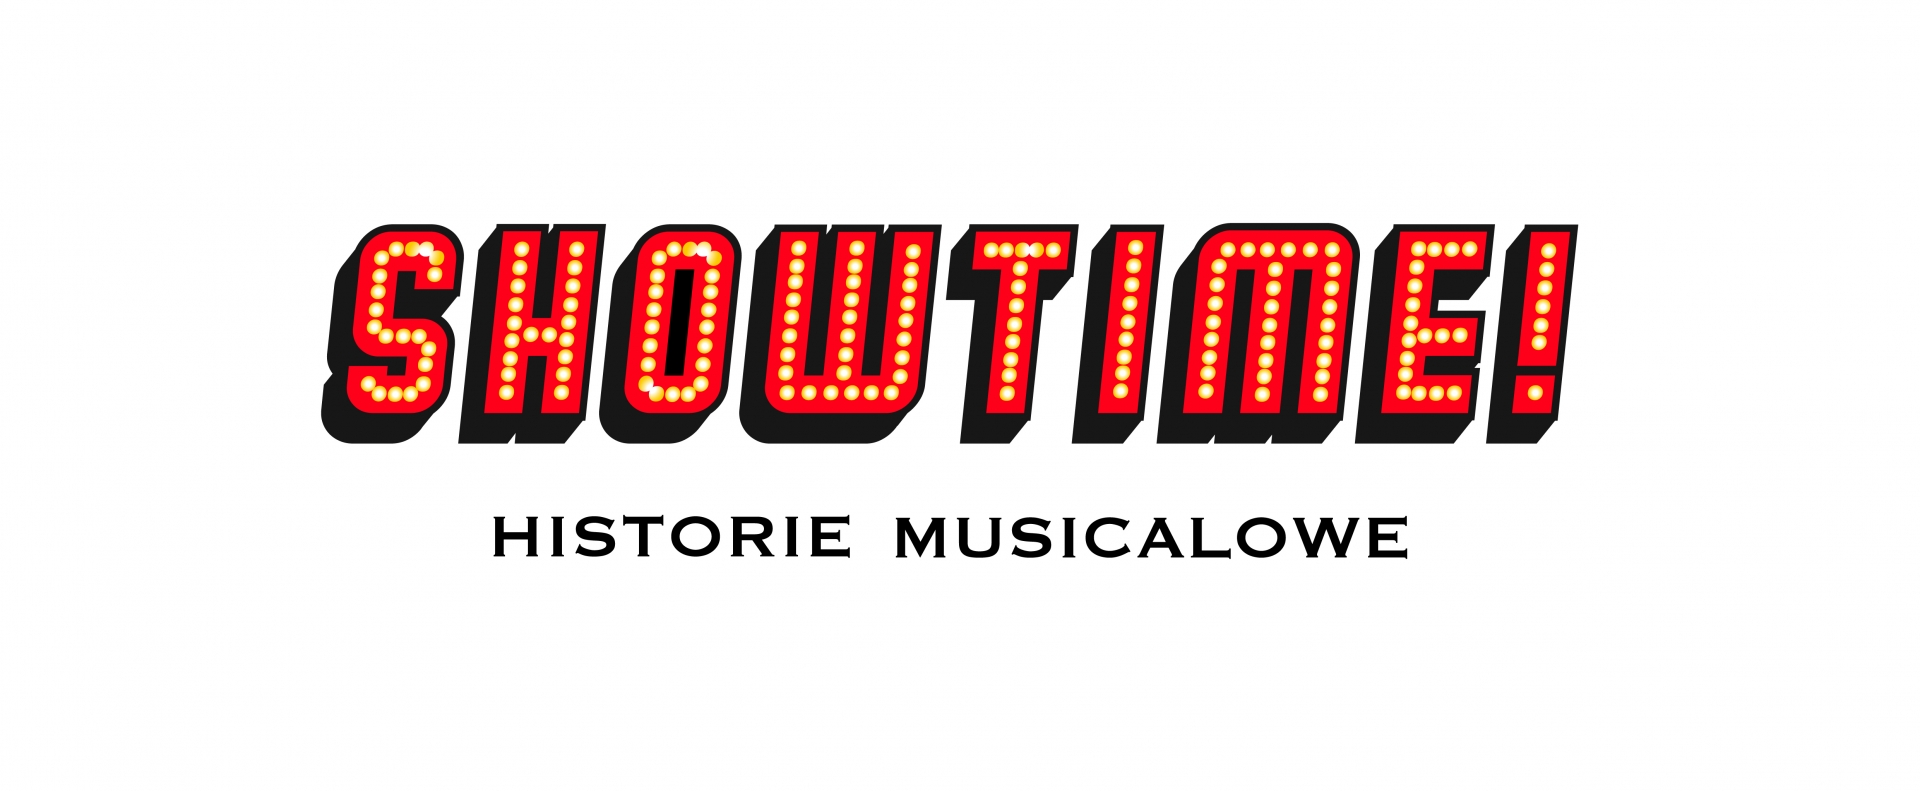 logotyp_showtime_01.jpg (full)